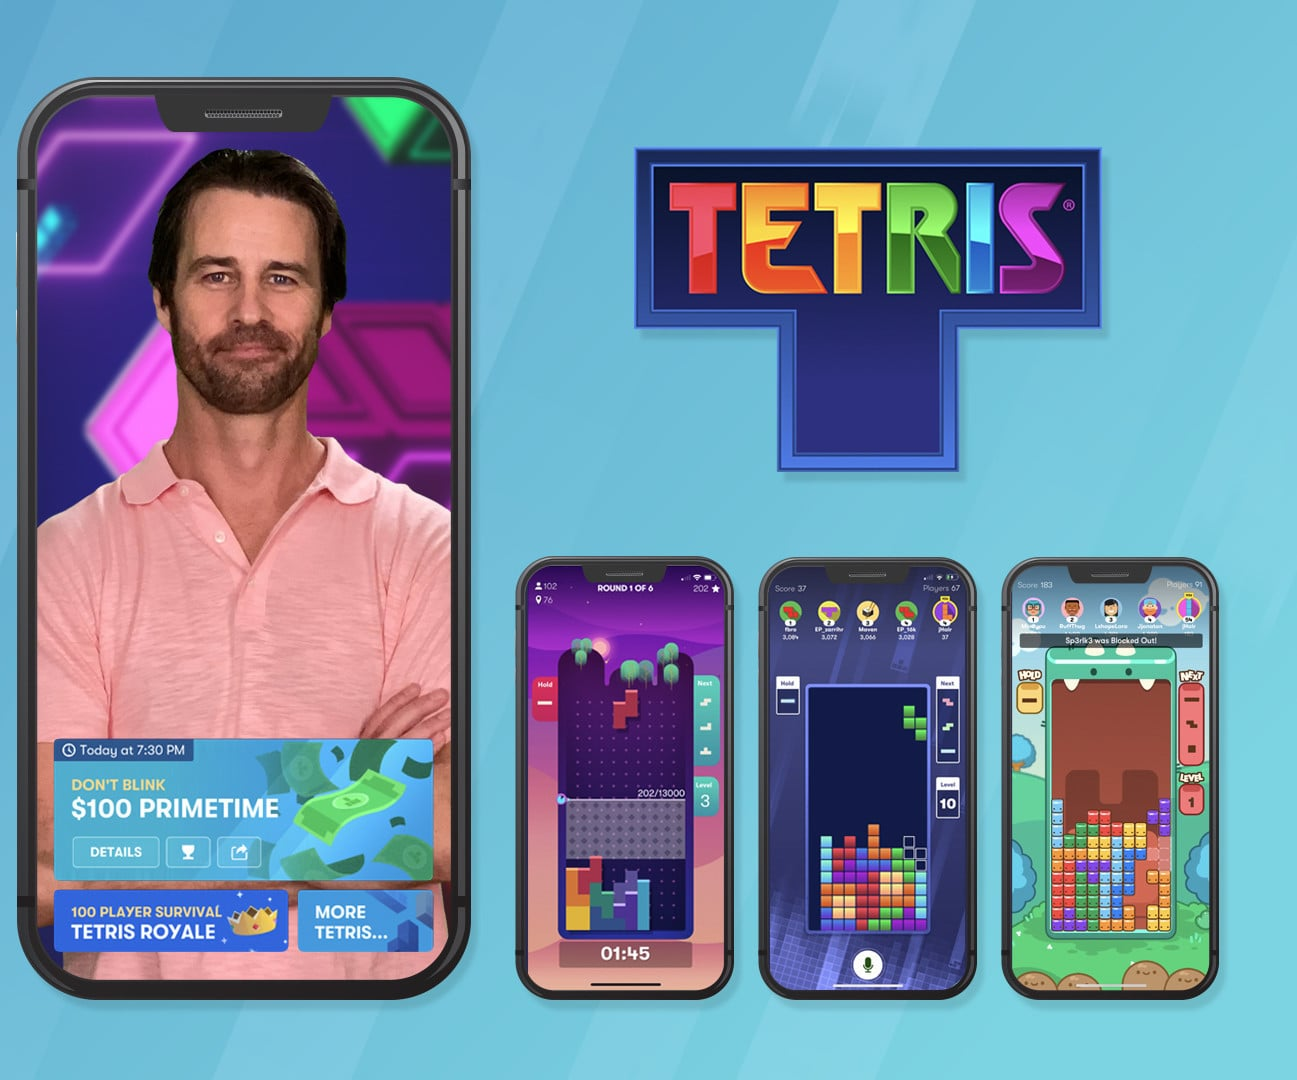 Tetris Adds New Daily Game Show Offering $1 Million in Annual Cash Prizes